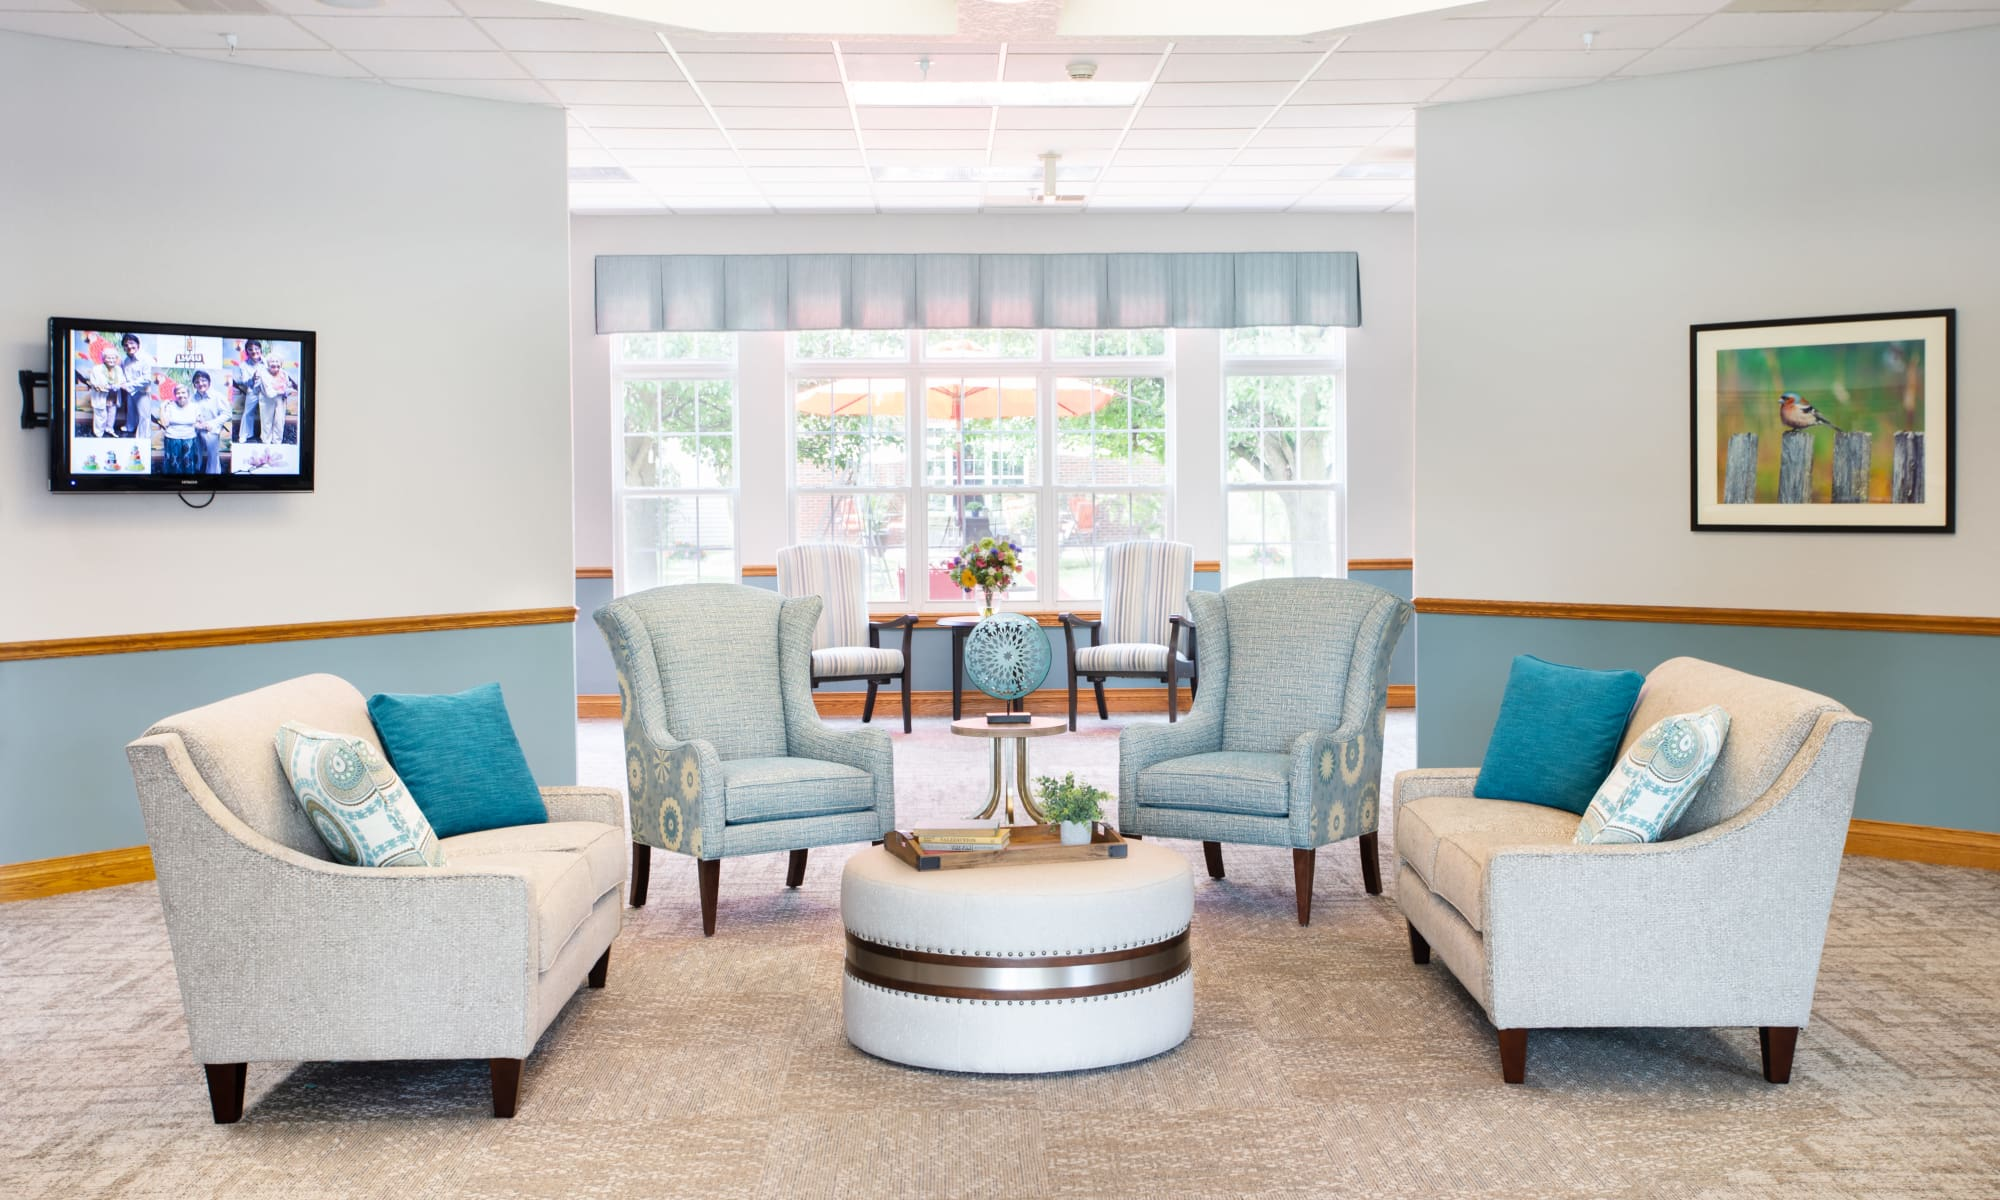 Premier assisted living care at Randall Residence in Decatur.